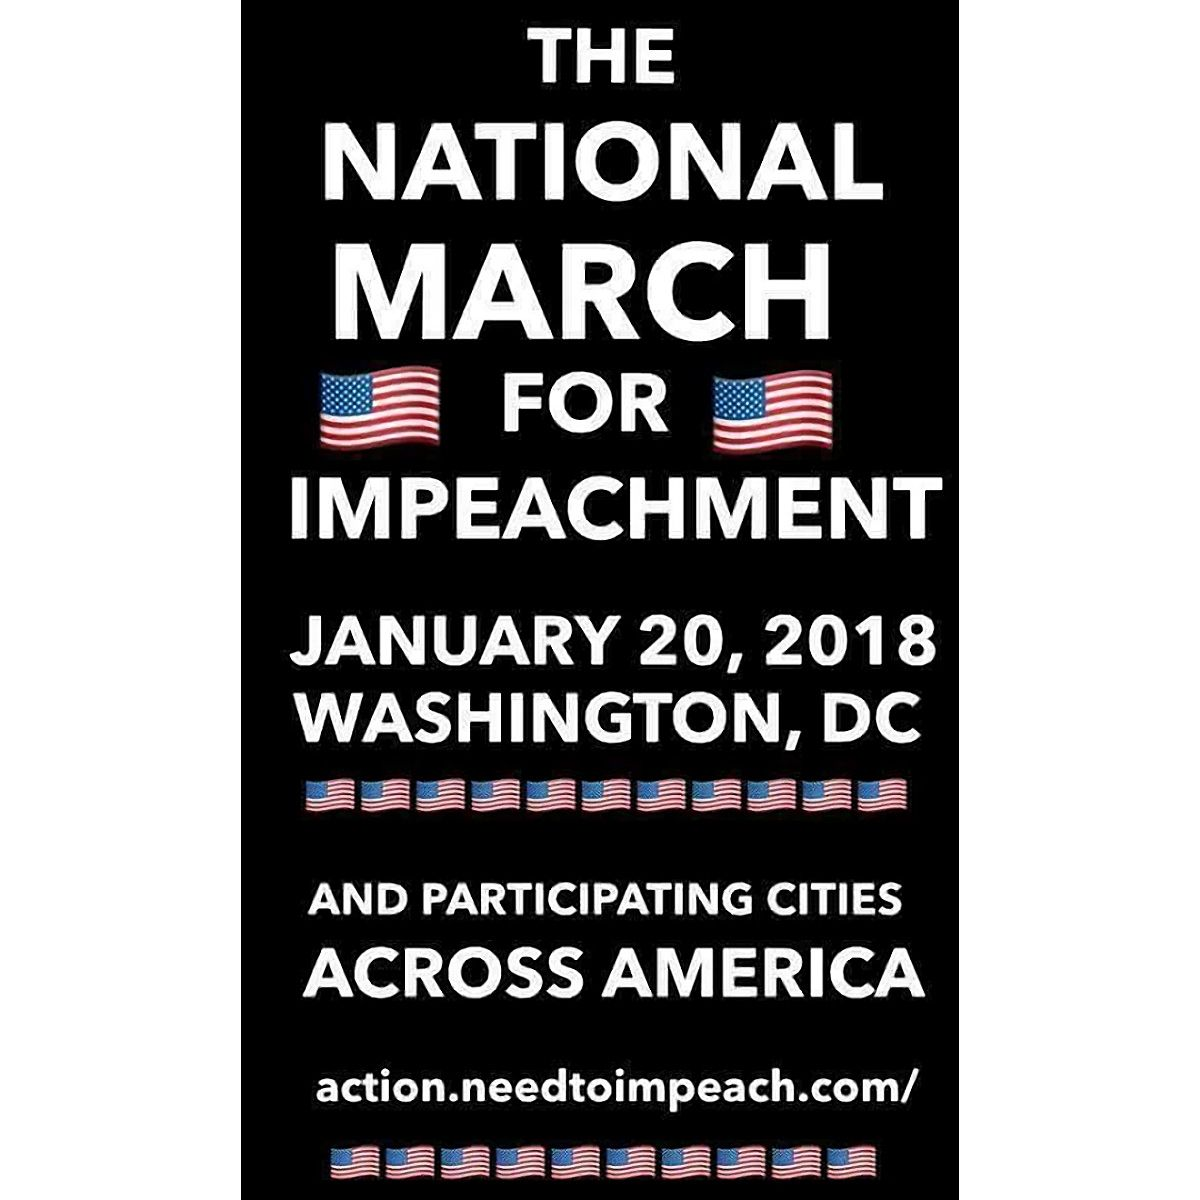 @realDonaldTrump IT'S A BEAUTIFUL DAY TO MARCH FOR YOUR IMPEACHMENT DUMMIE. https://t.co/SEM0q3rUsE